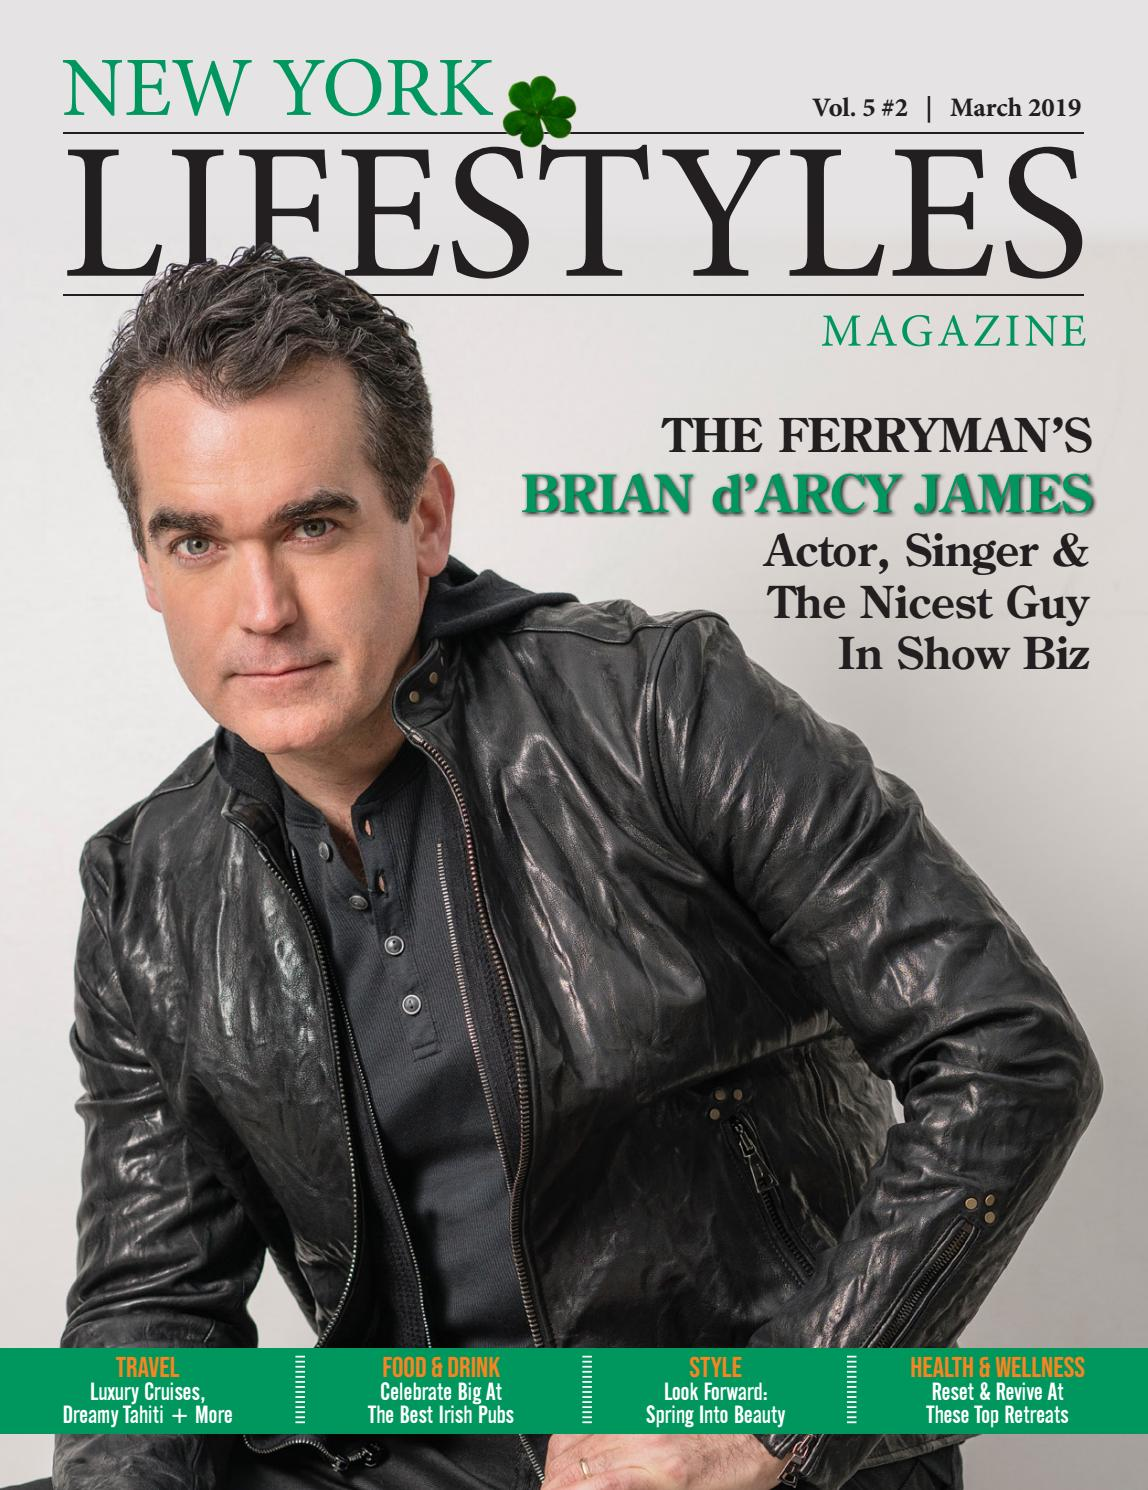 fca8e85a8a5feb New York Lifestyles Magazine - March 2019 by New York Lifestyles Magazine -  issuu